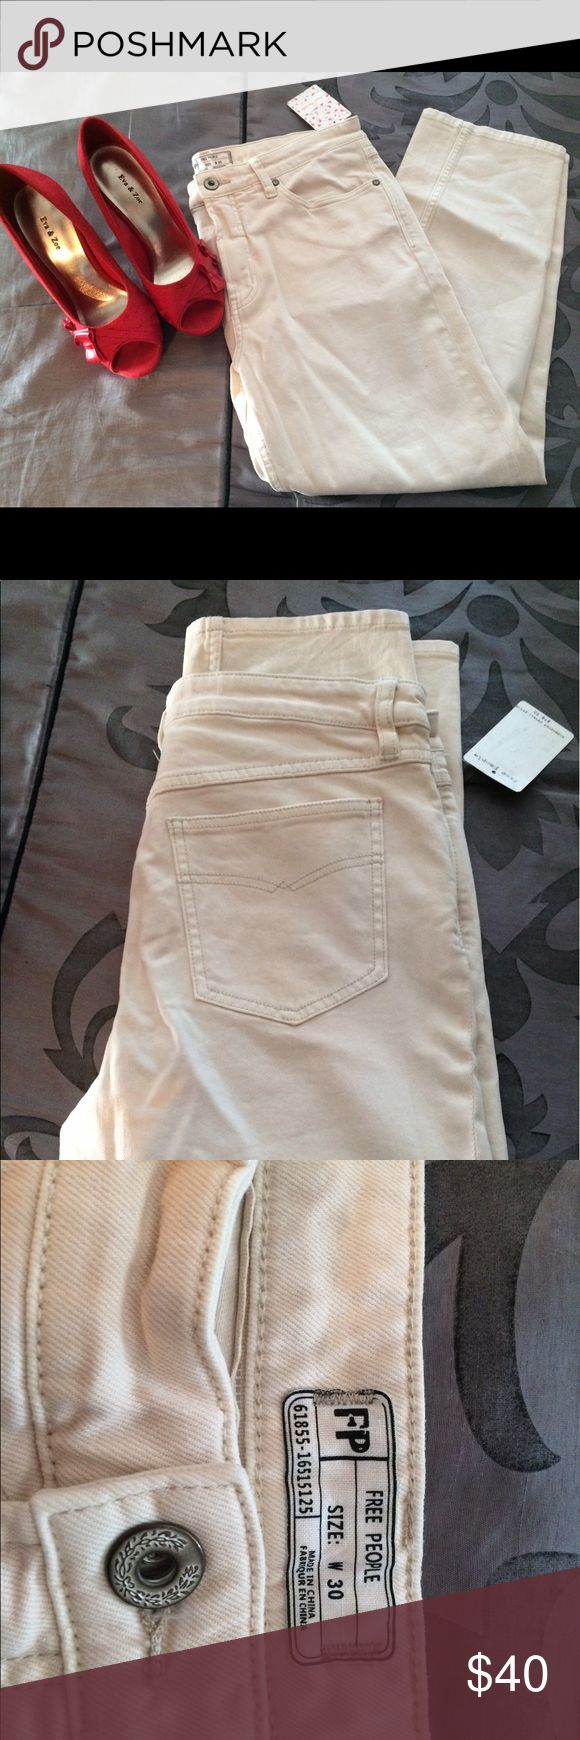 """Free people jeans size 30 NWT Free people jeans NWT 5 pocket jeans. Light colored jeans 25 1/2"""" inseam. Perfect for summer. Free People Jeans Straight Leg"""